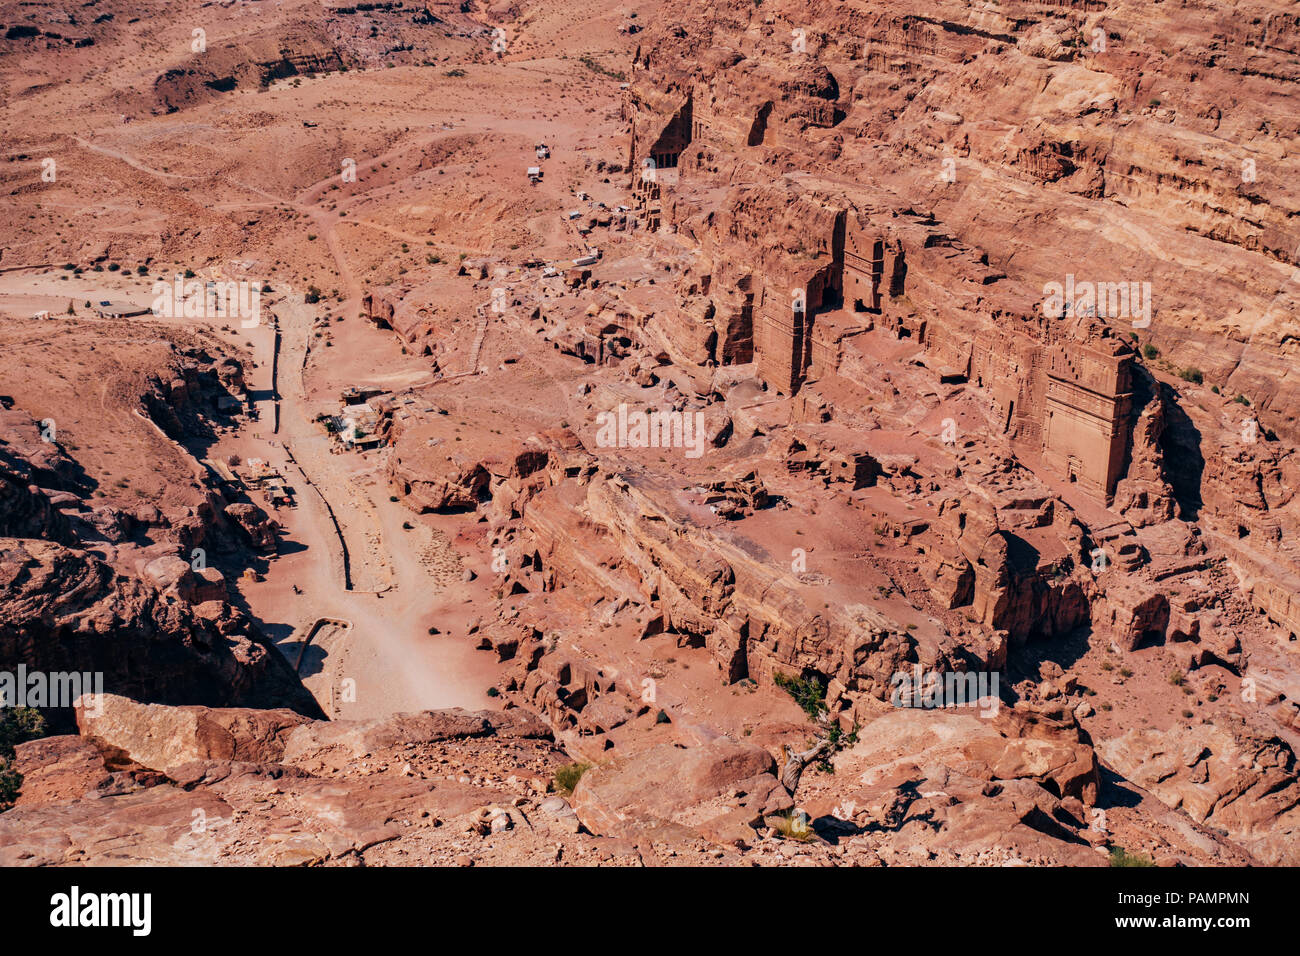 an aerial view of some of the rock face tombs in the Lost City of Petra, Jordan Stock Photo